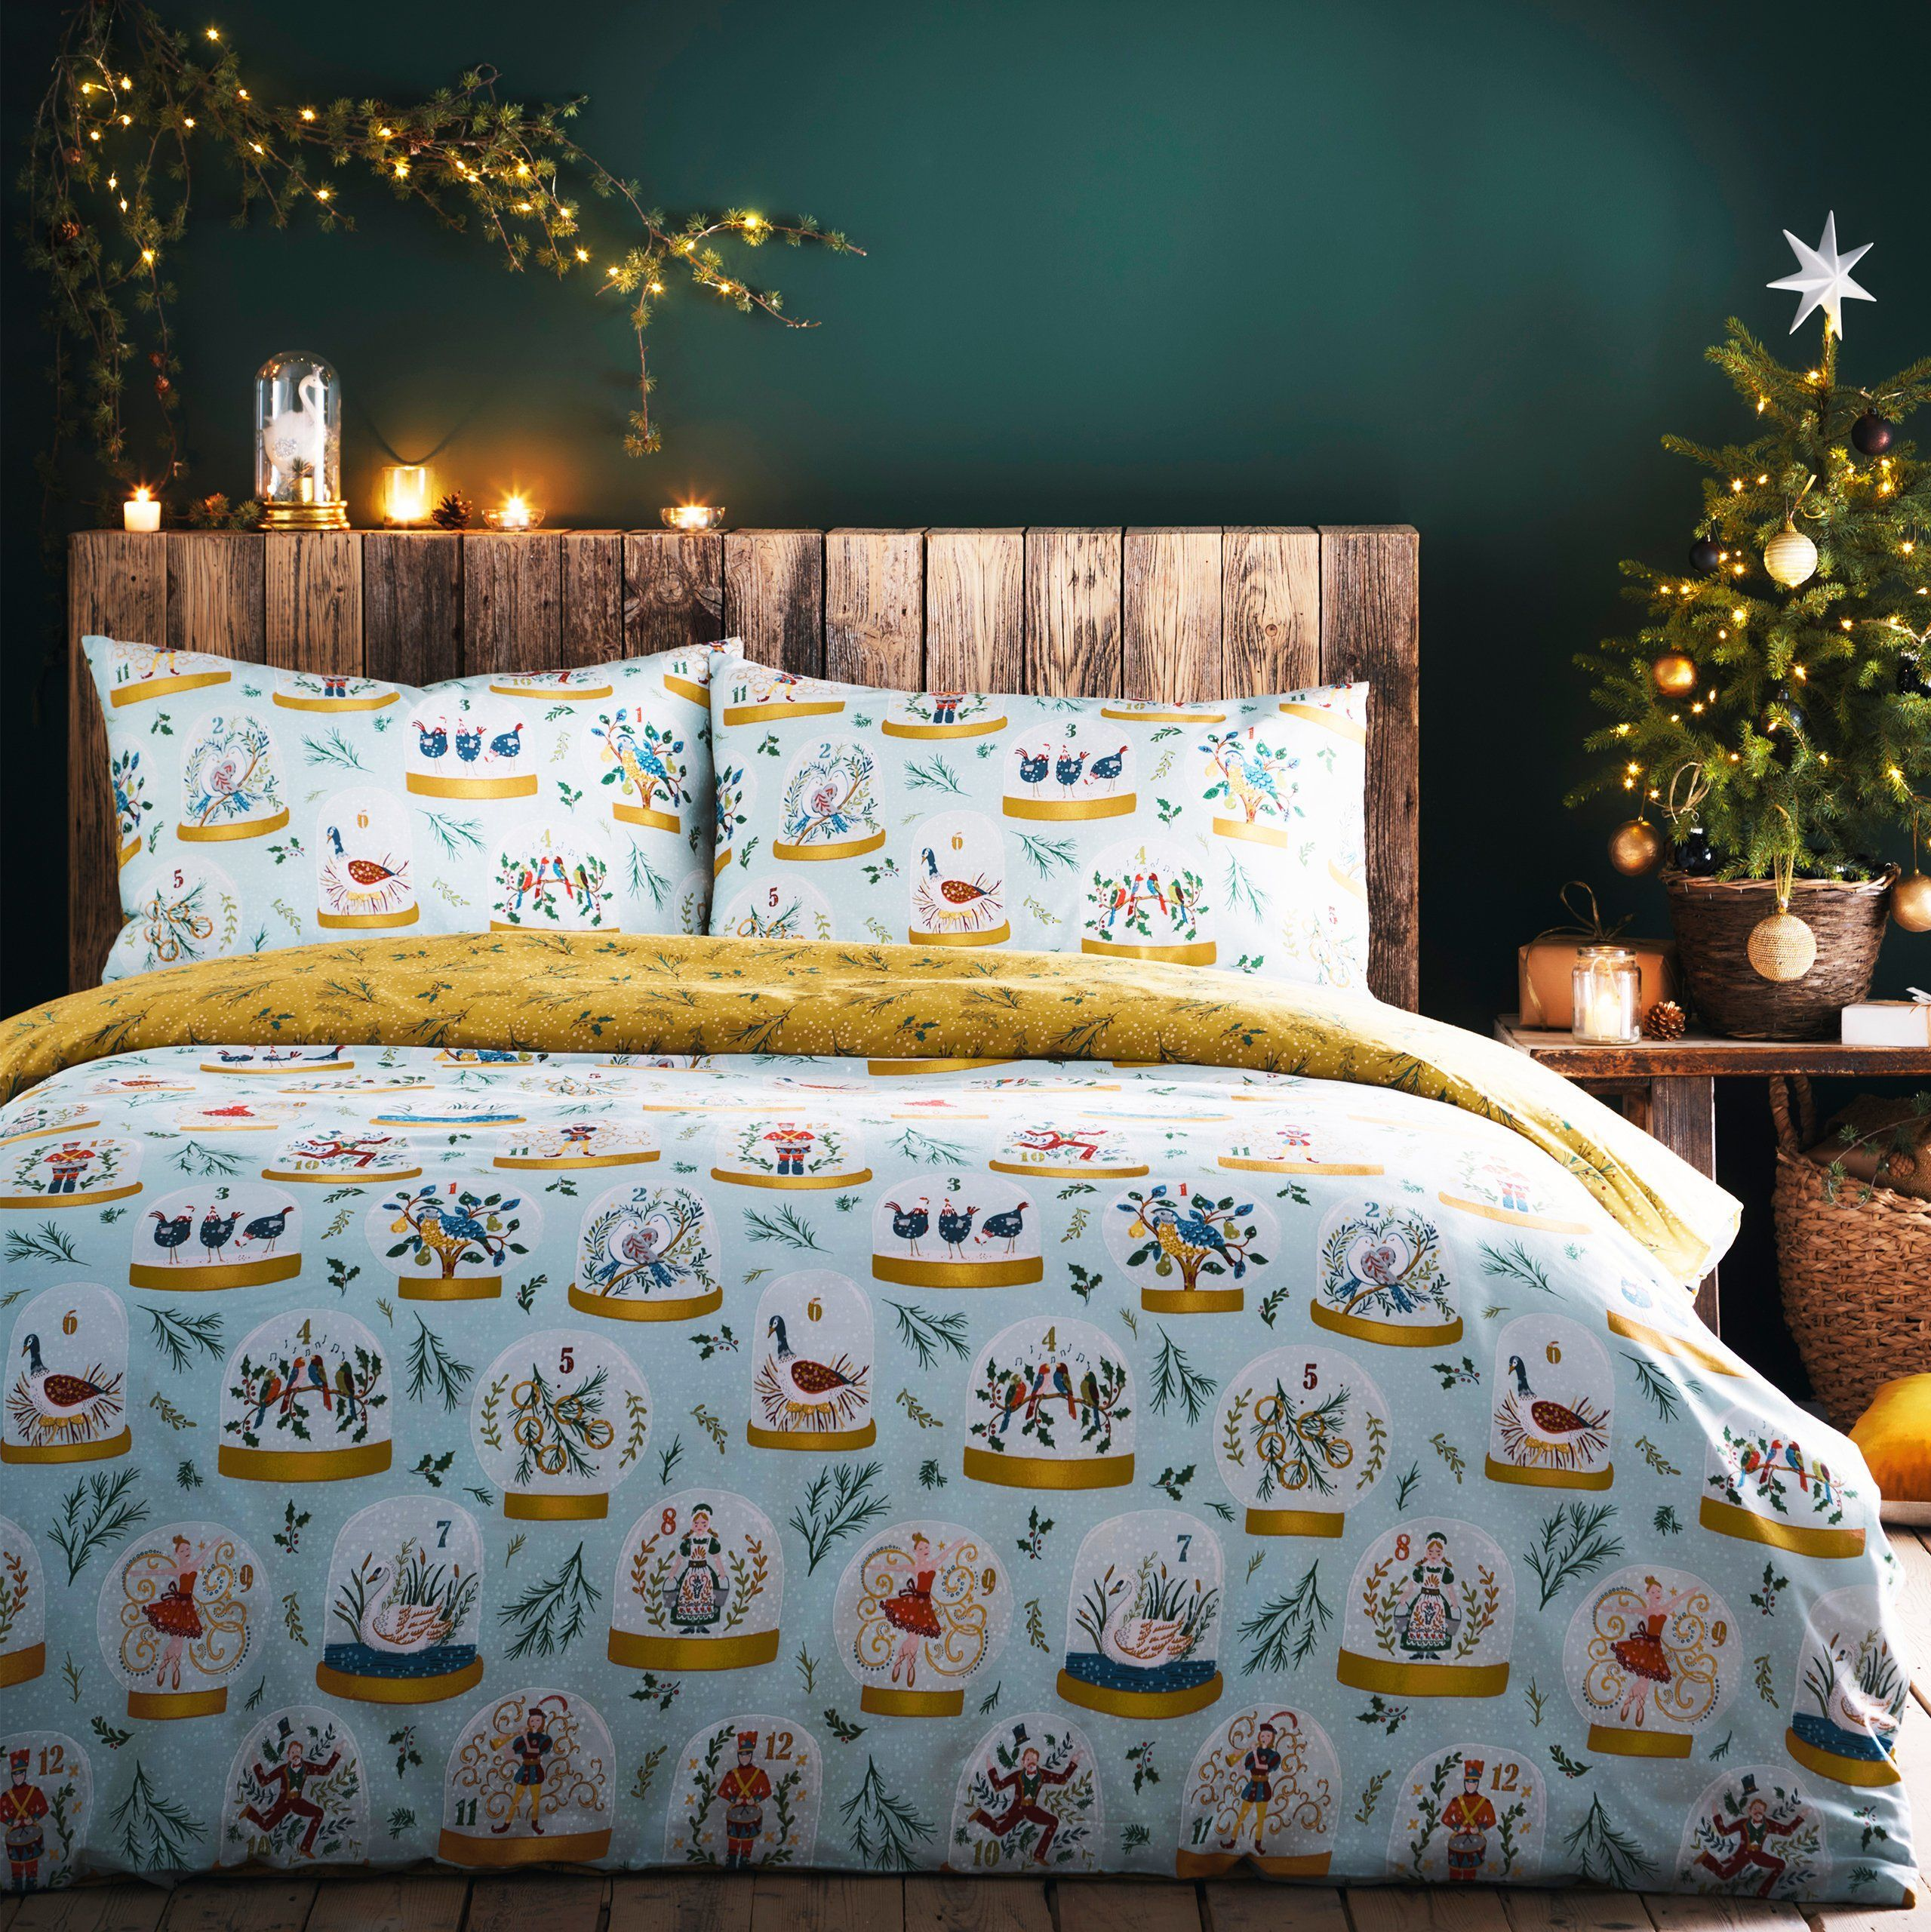 Best Christmas Bedding 15 Of The